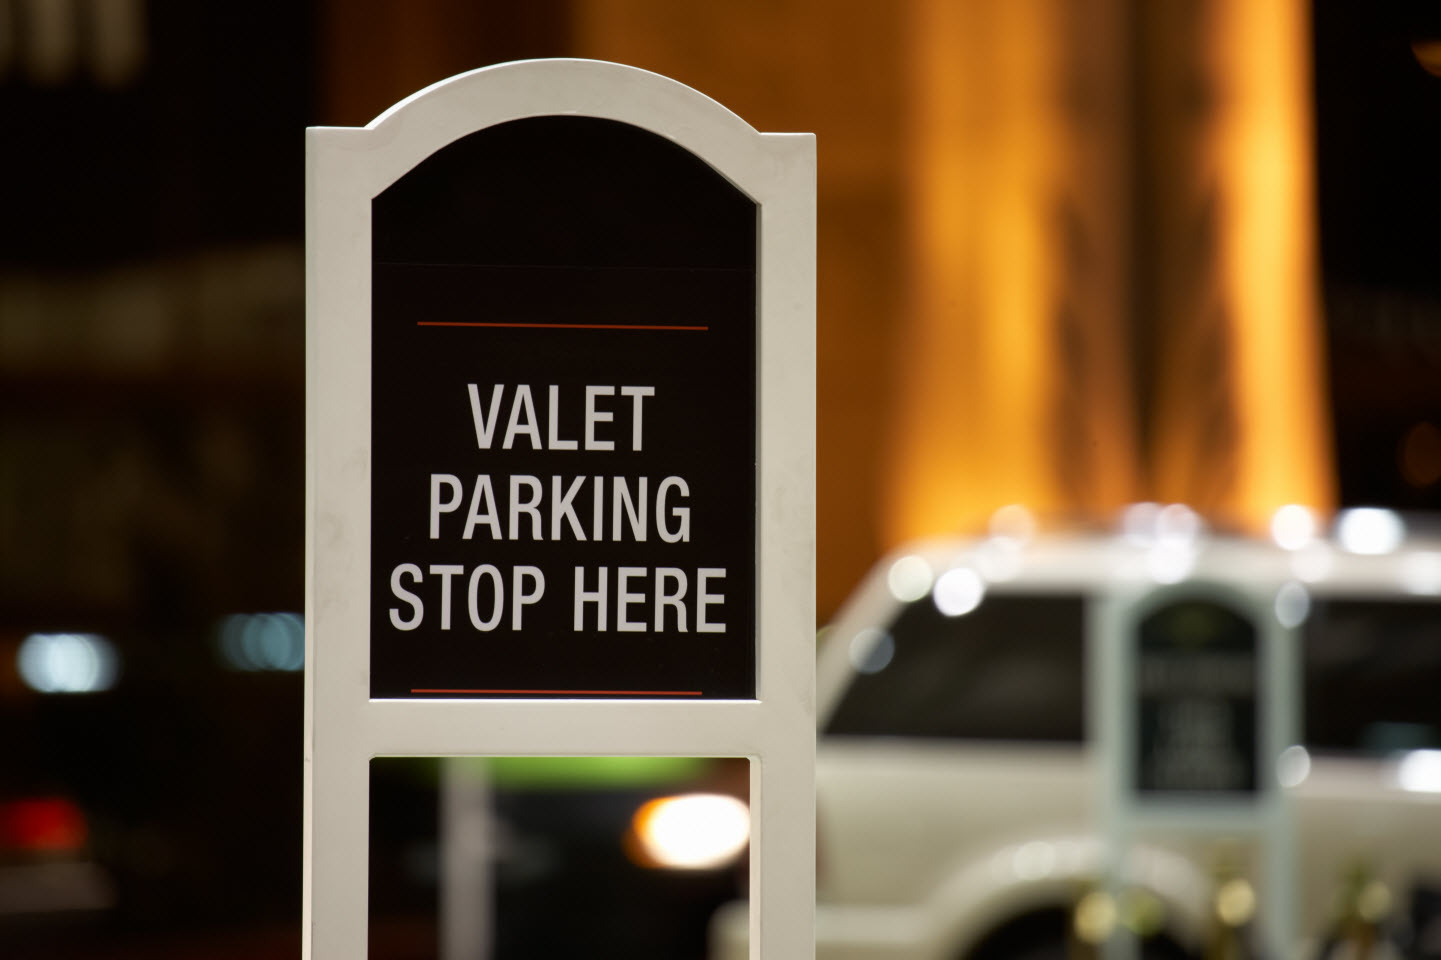 Miami valet parking service